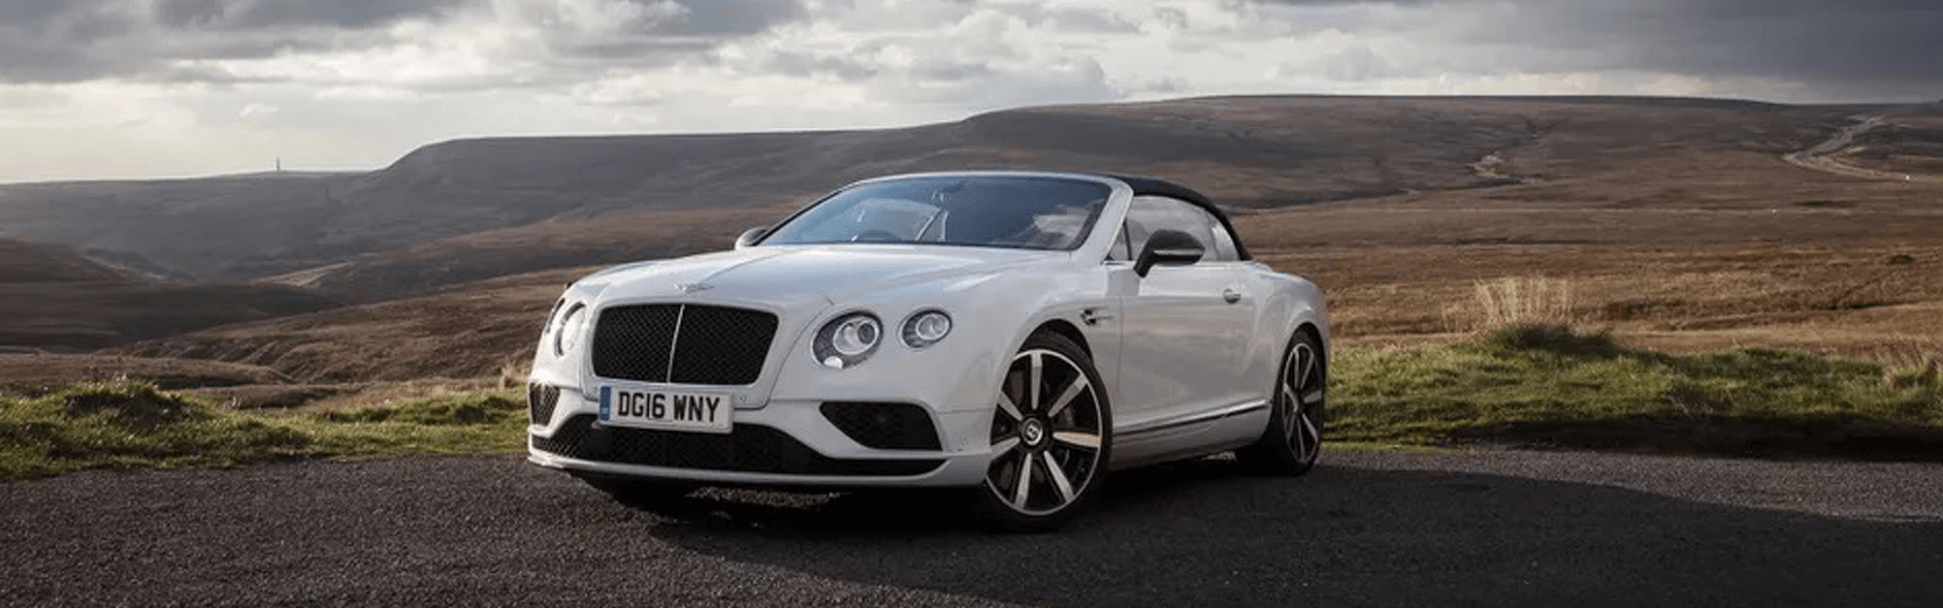 bentley extended warranty